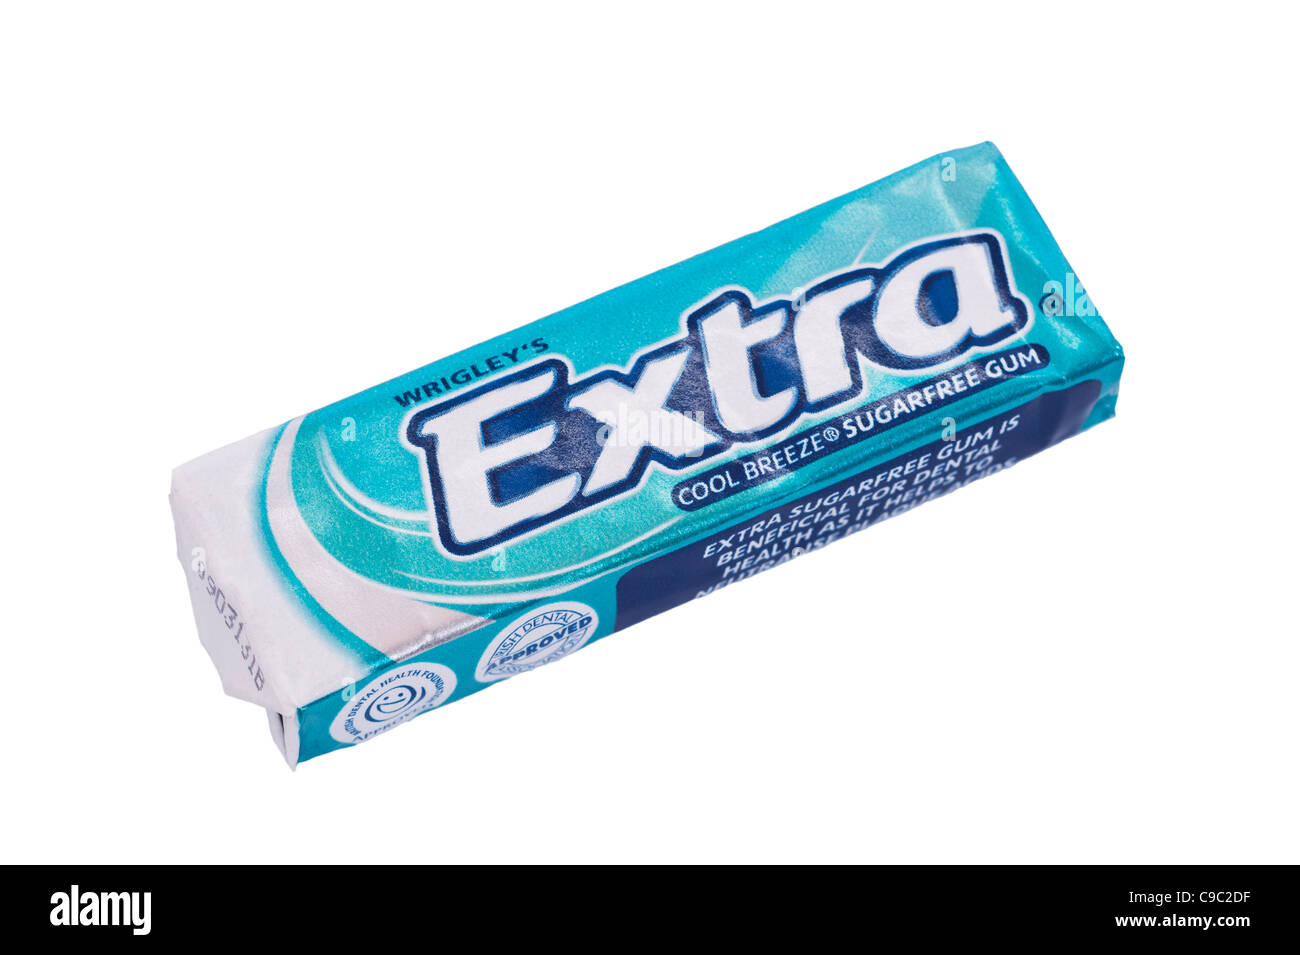 A pack of Wrigley's Extra sugarfree cool breeze chewing gum on a white background - Stock Image